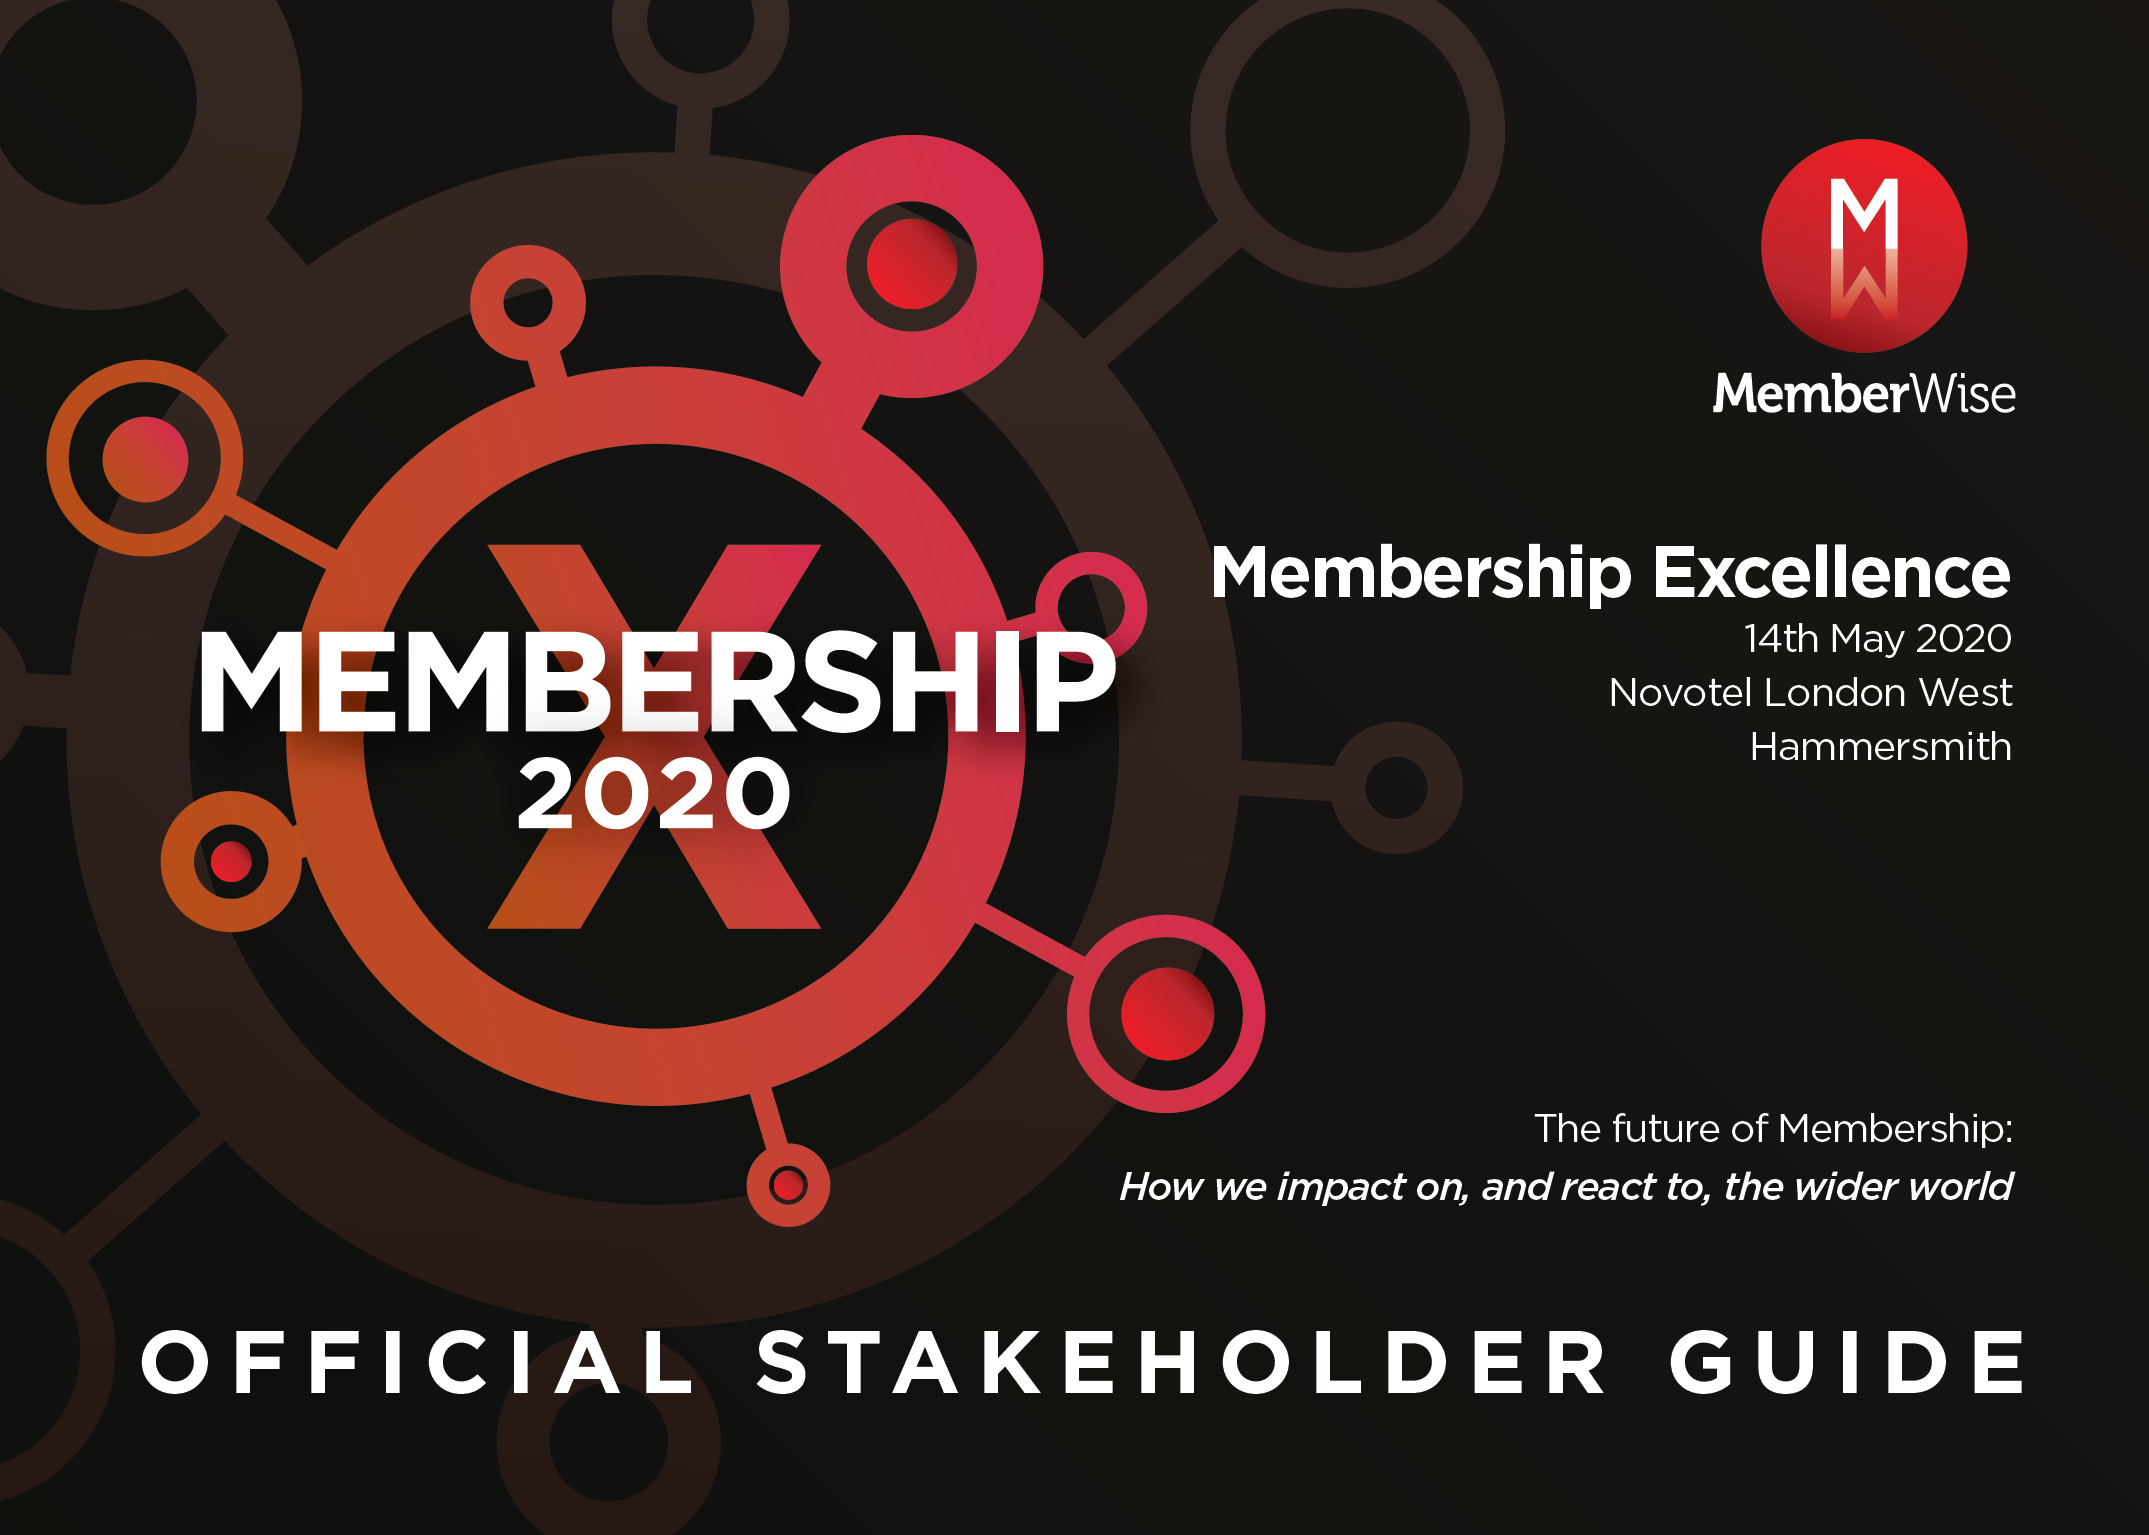 Official Membership Excellence 2019 Stakeholder Guide